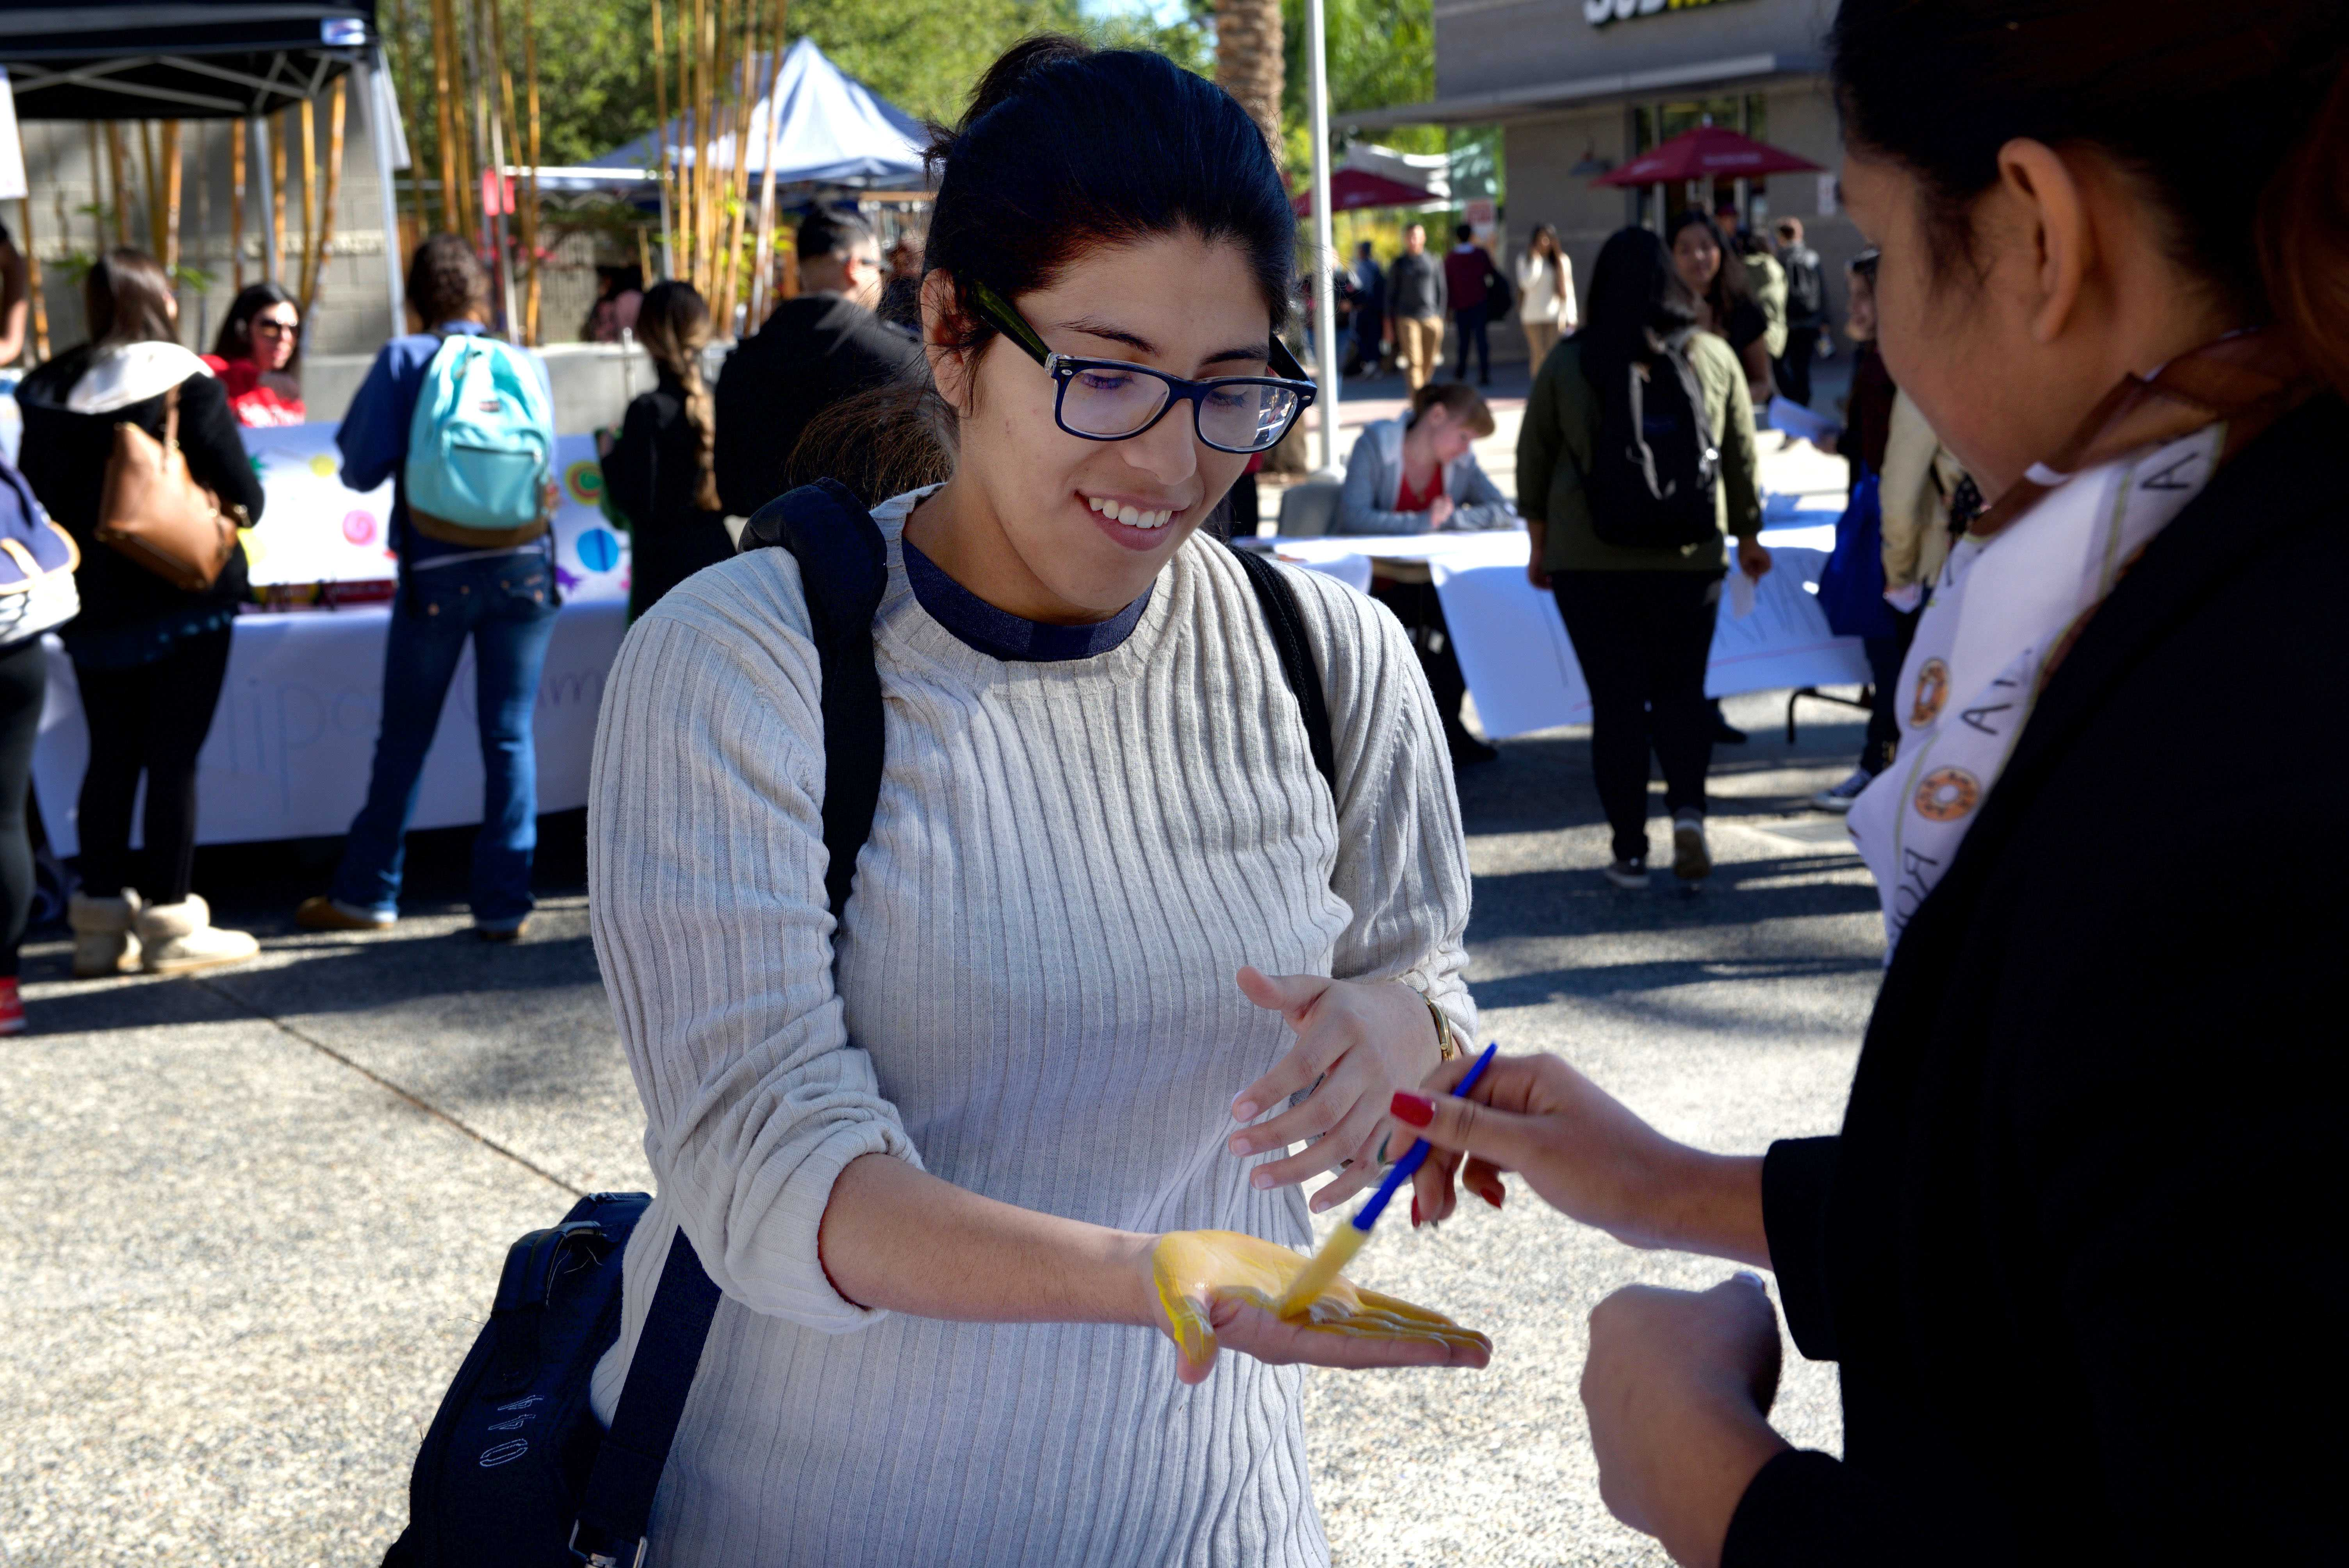 Color printing csun - Psychology Major Nereida Contreras Gets Her Hand Painted To Leave A Hand Print On One Of The Banners On The Tables Photo Credit Alejandro Aranda